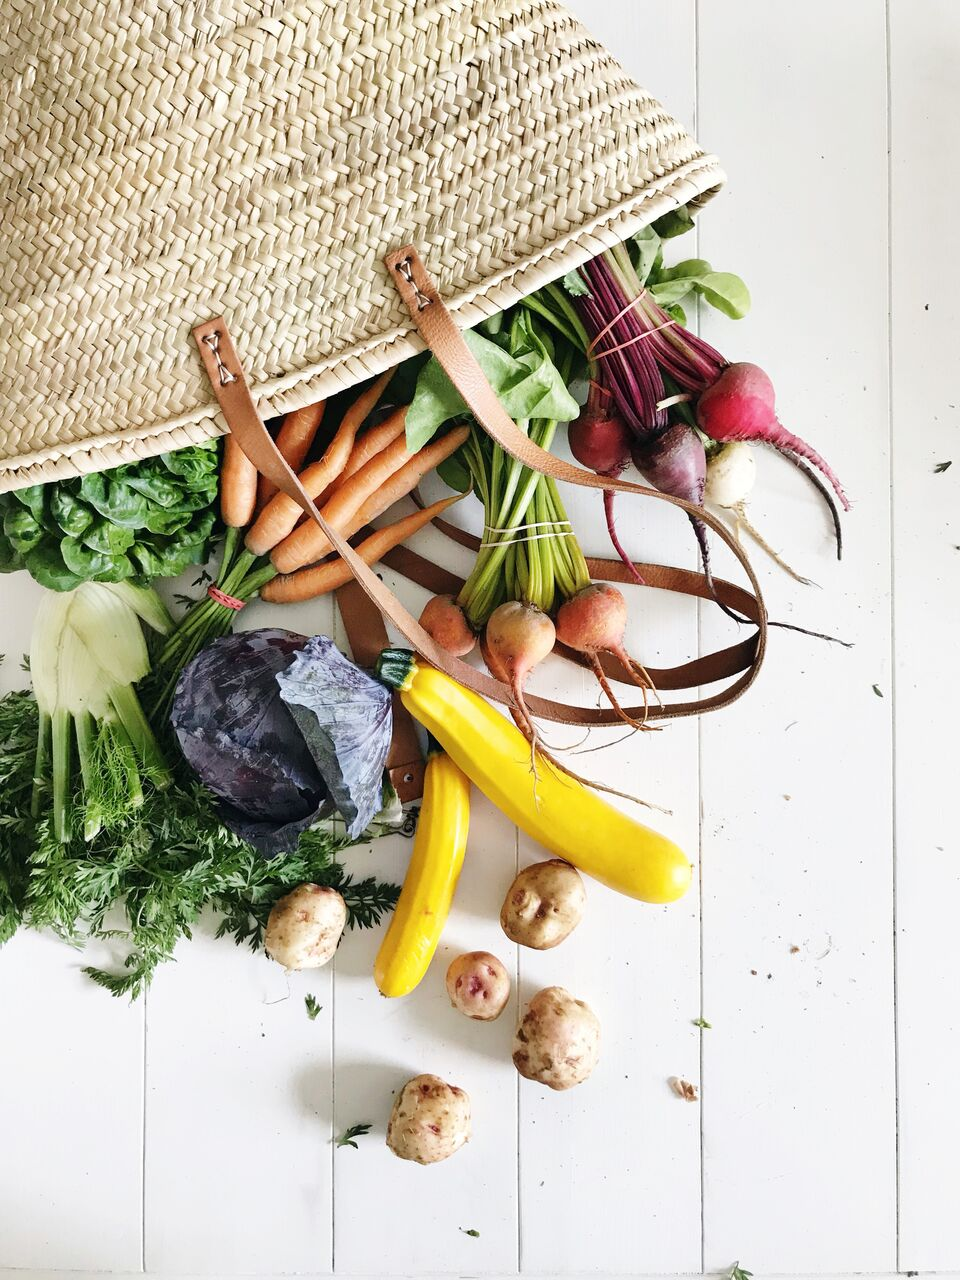 Farmer's Basket full of veggies - so healthy!